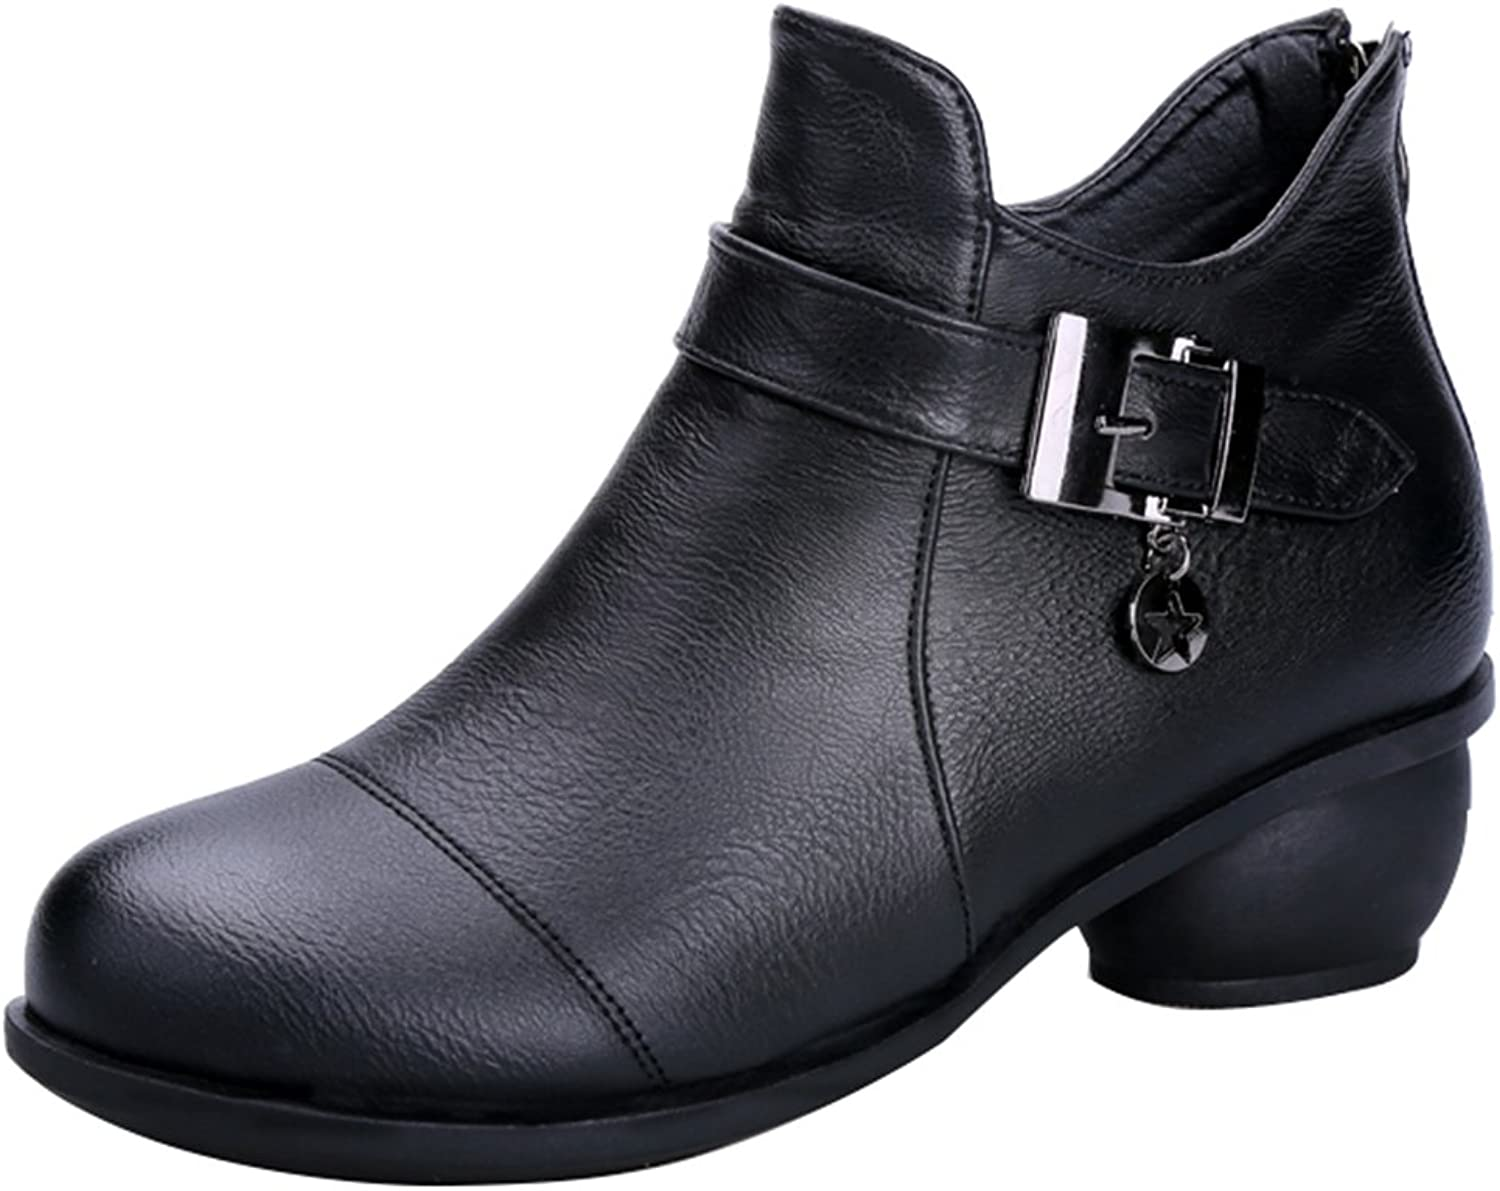 Abby 6827 Womens Ballroom Casual Rumba Closed Toe Flat Cozy Mid Top Boots Square Modern Dance shoes